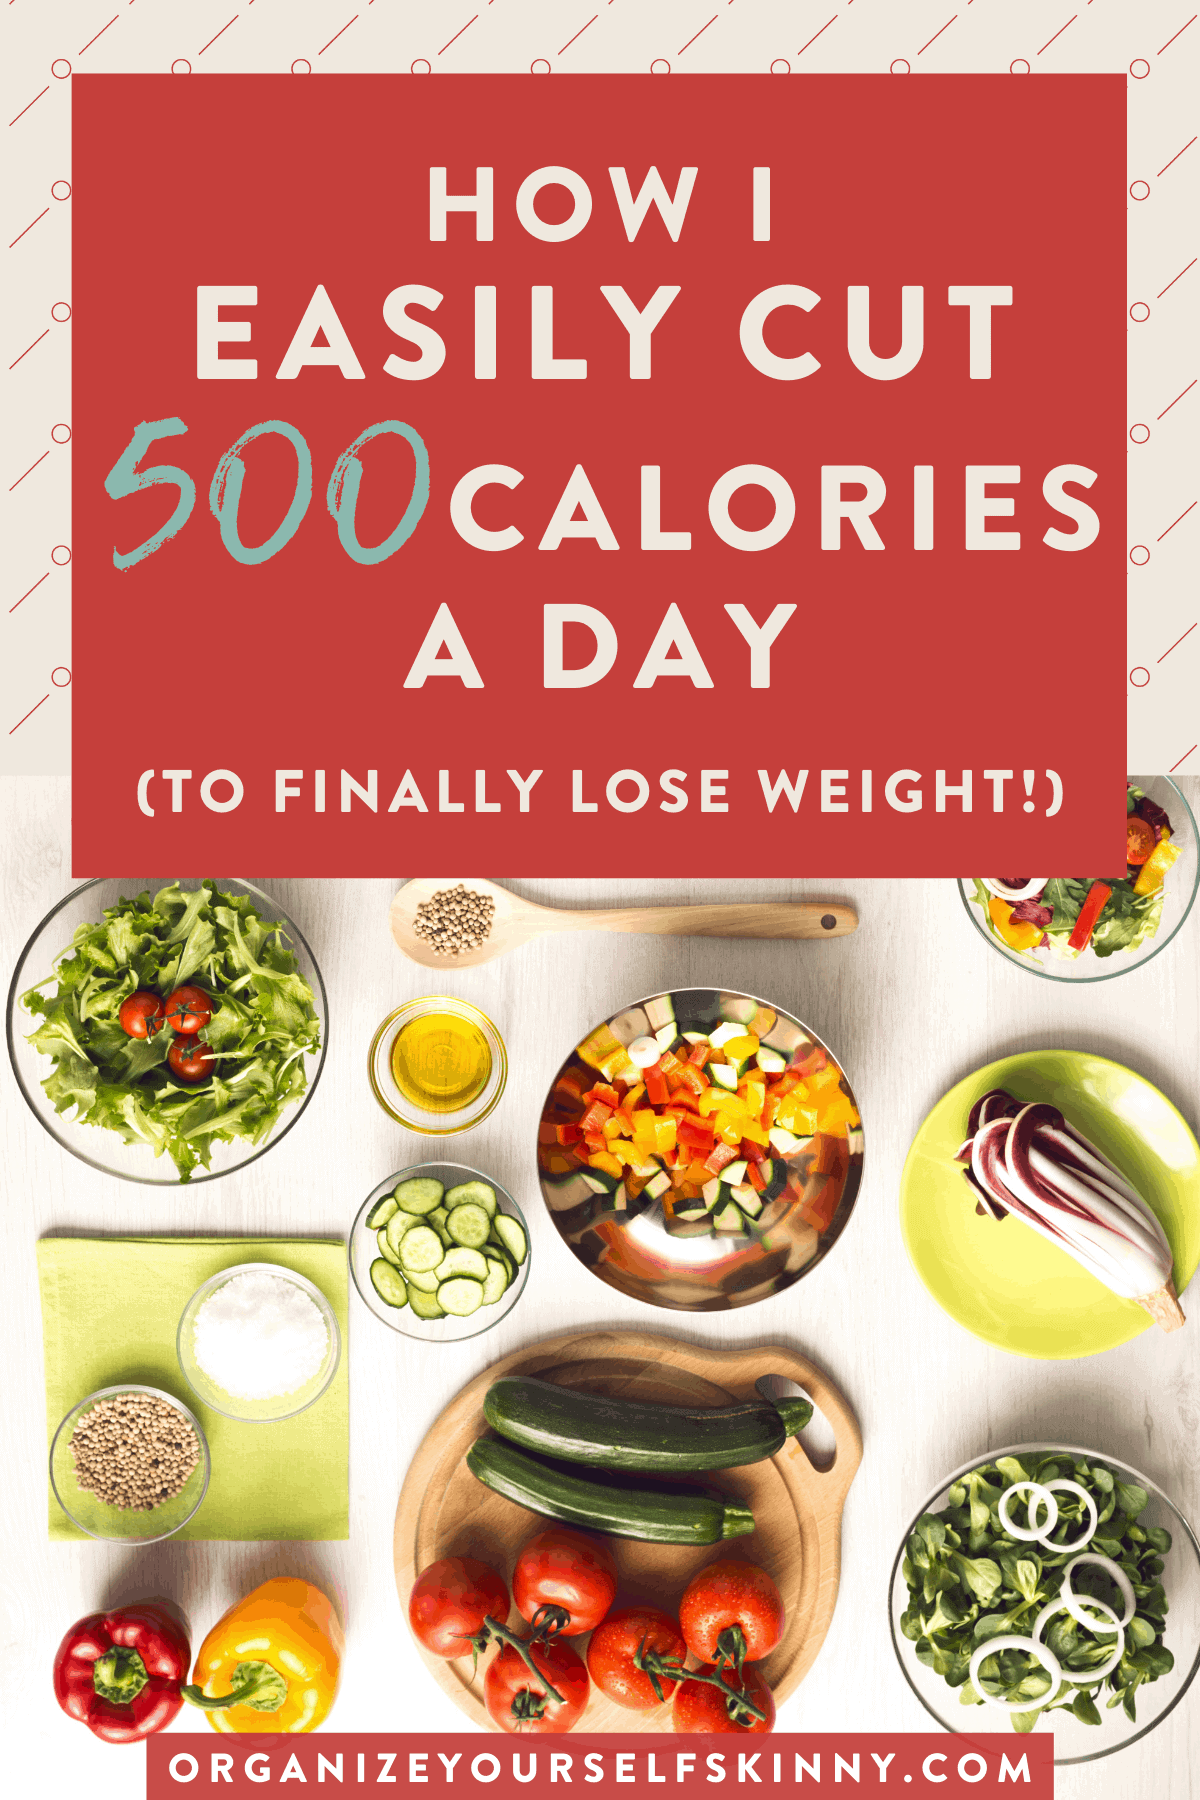 how-to-easily-cut-calories-a day